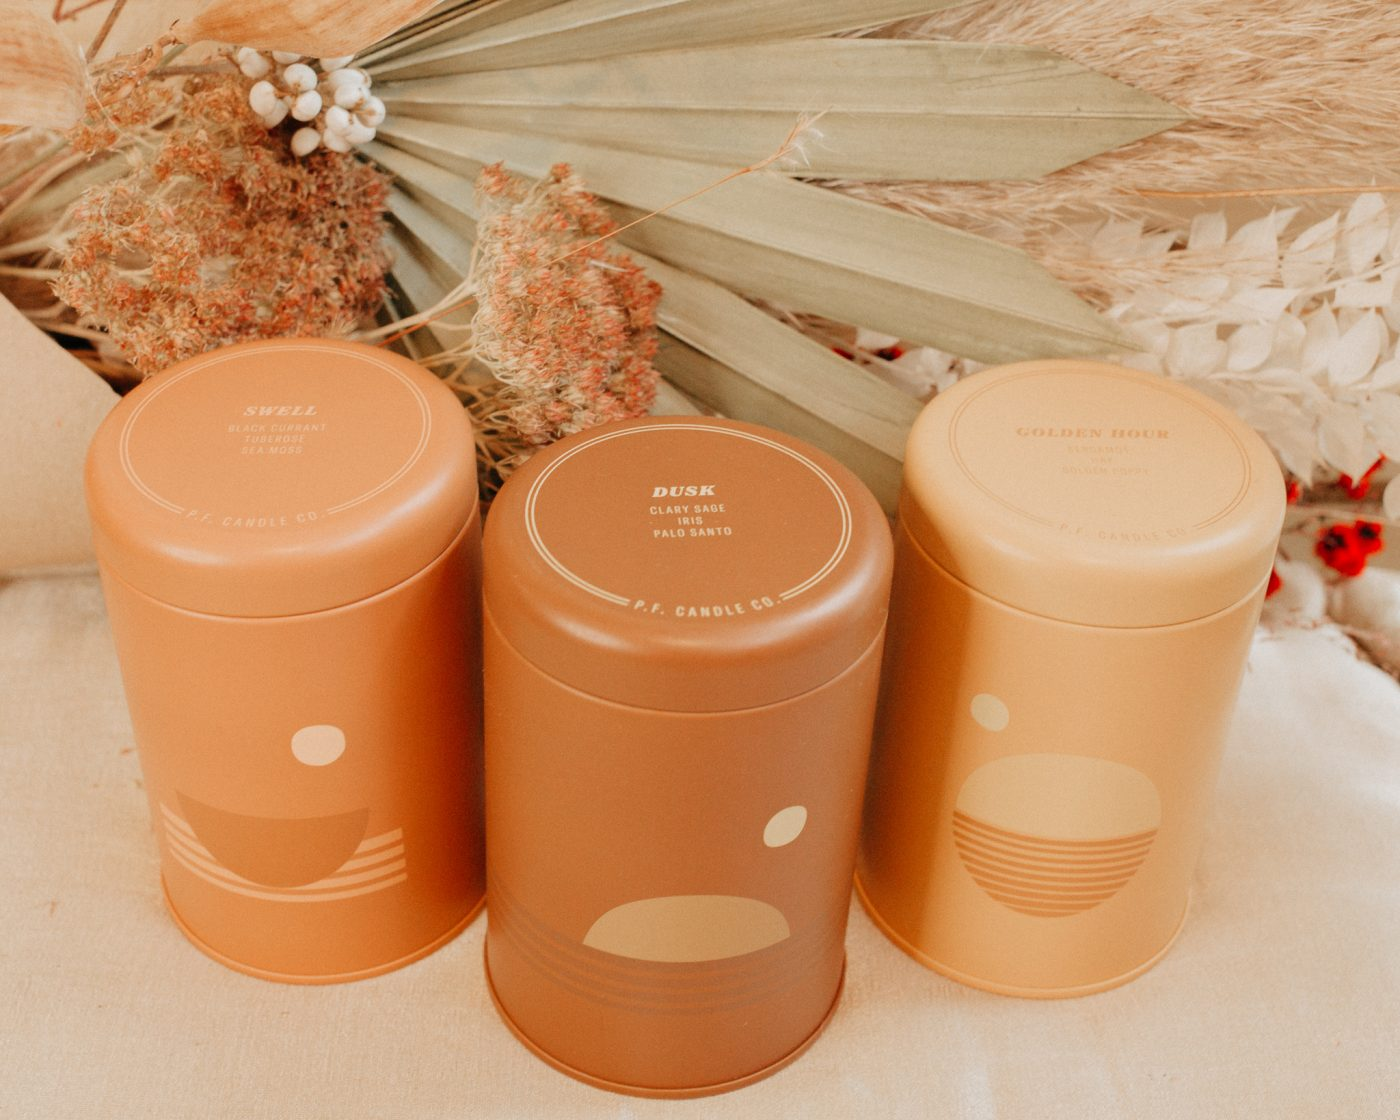 photo of 3 PF Candle Co Soy candles